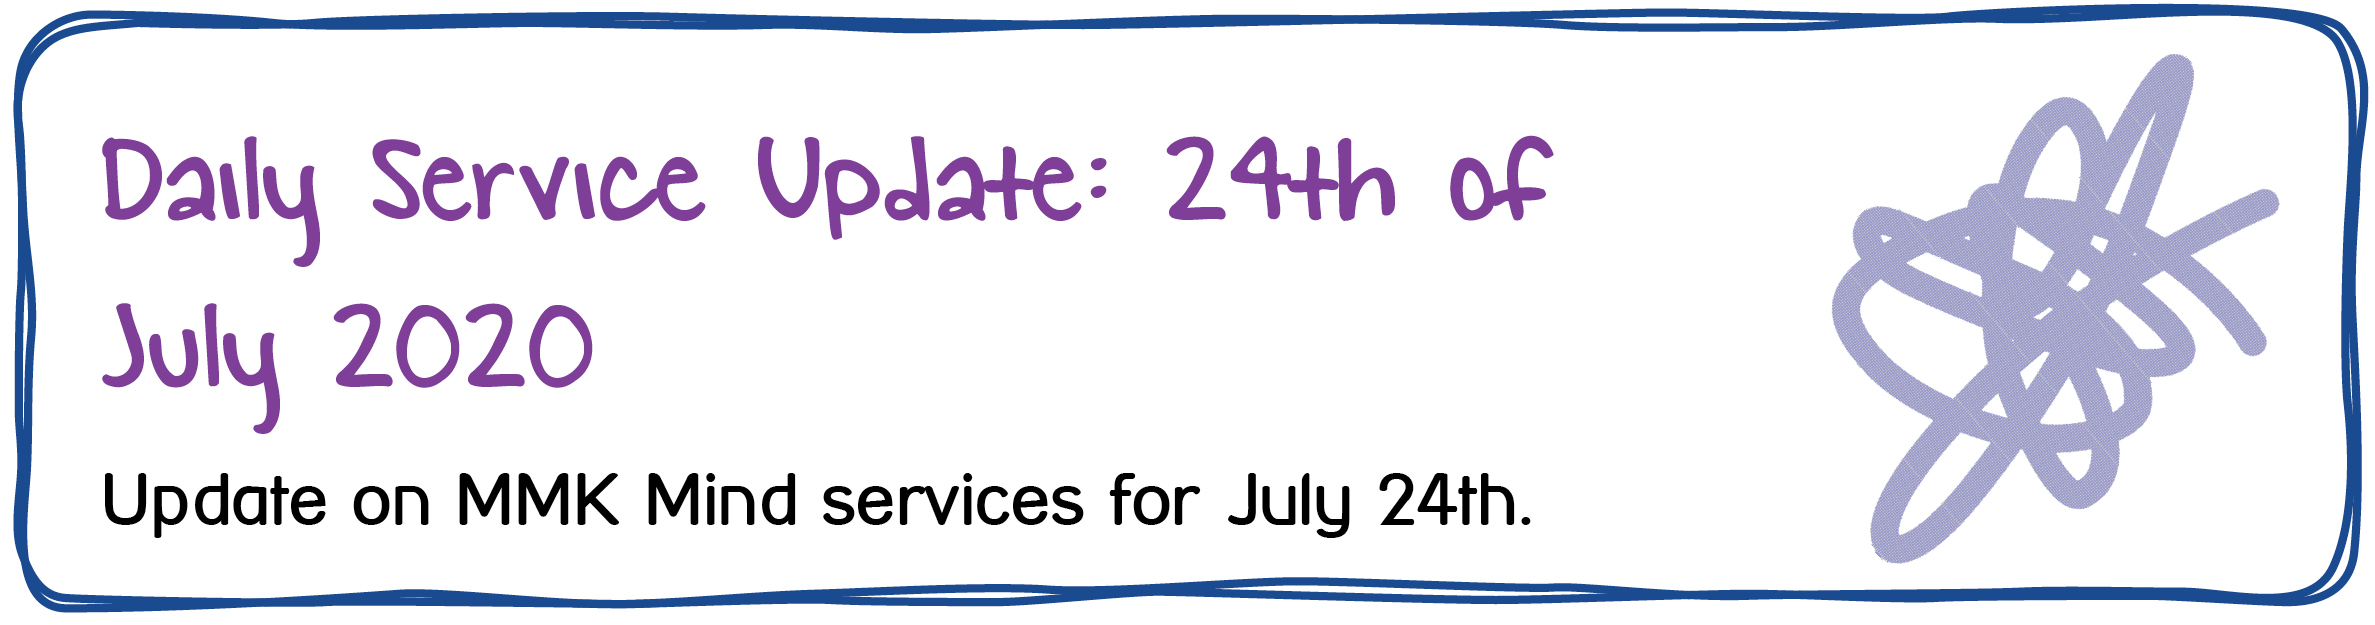 Daily Service Update: 24th of July 2020. Update on MMK Mind services for July 24th.